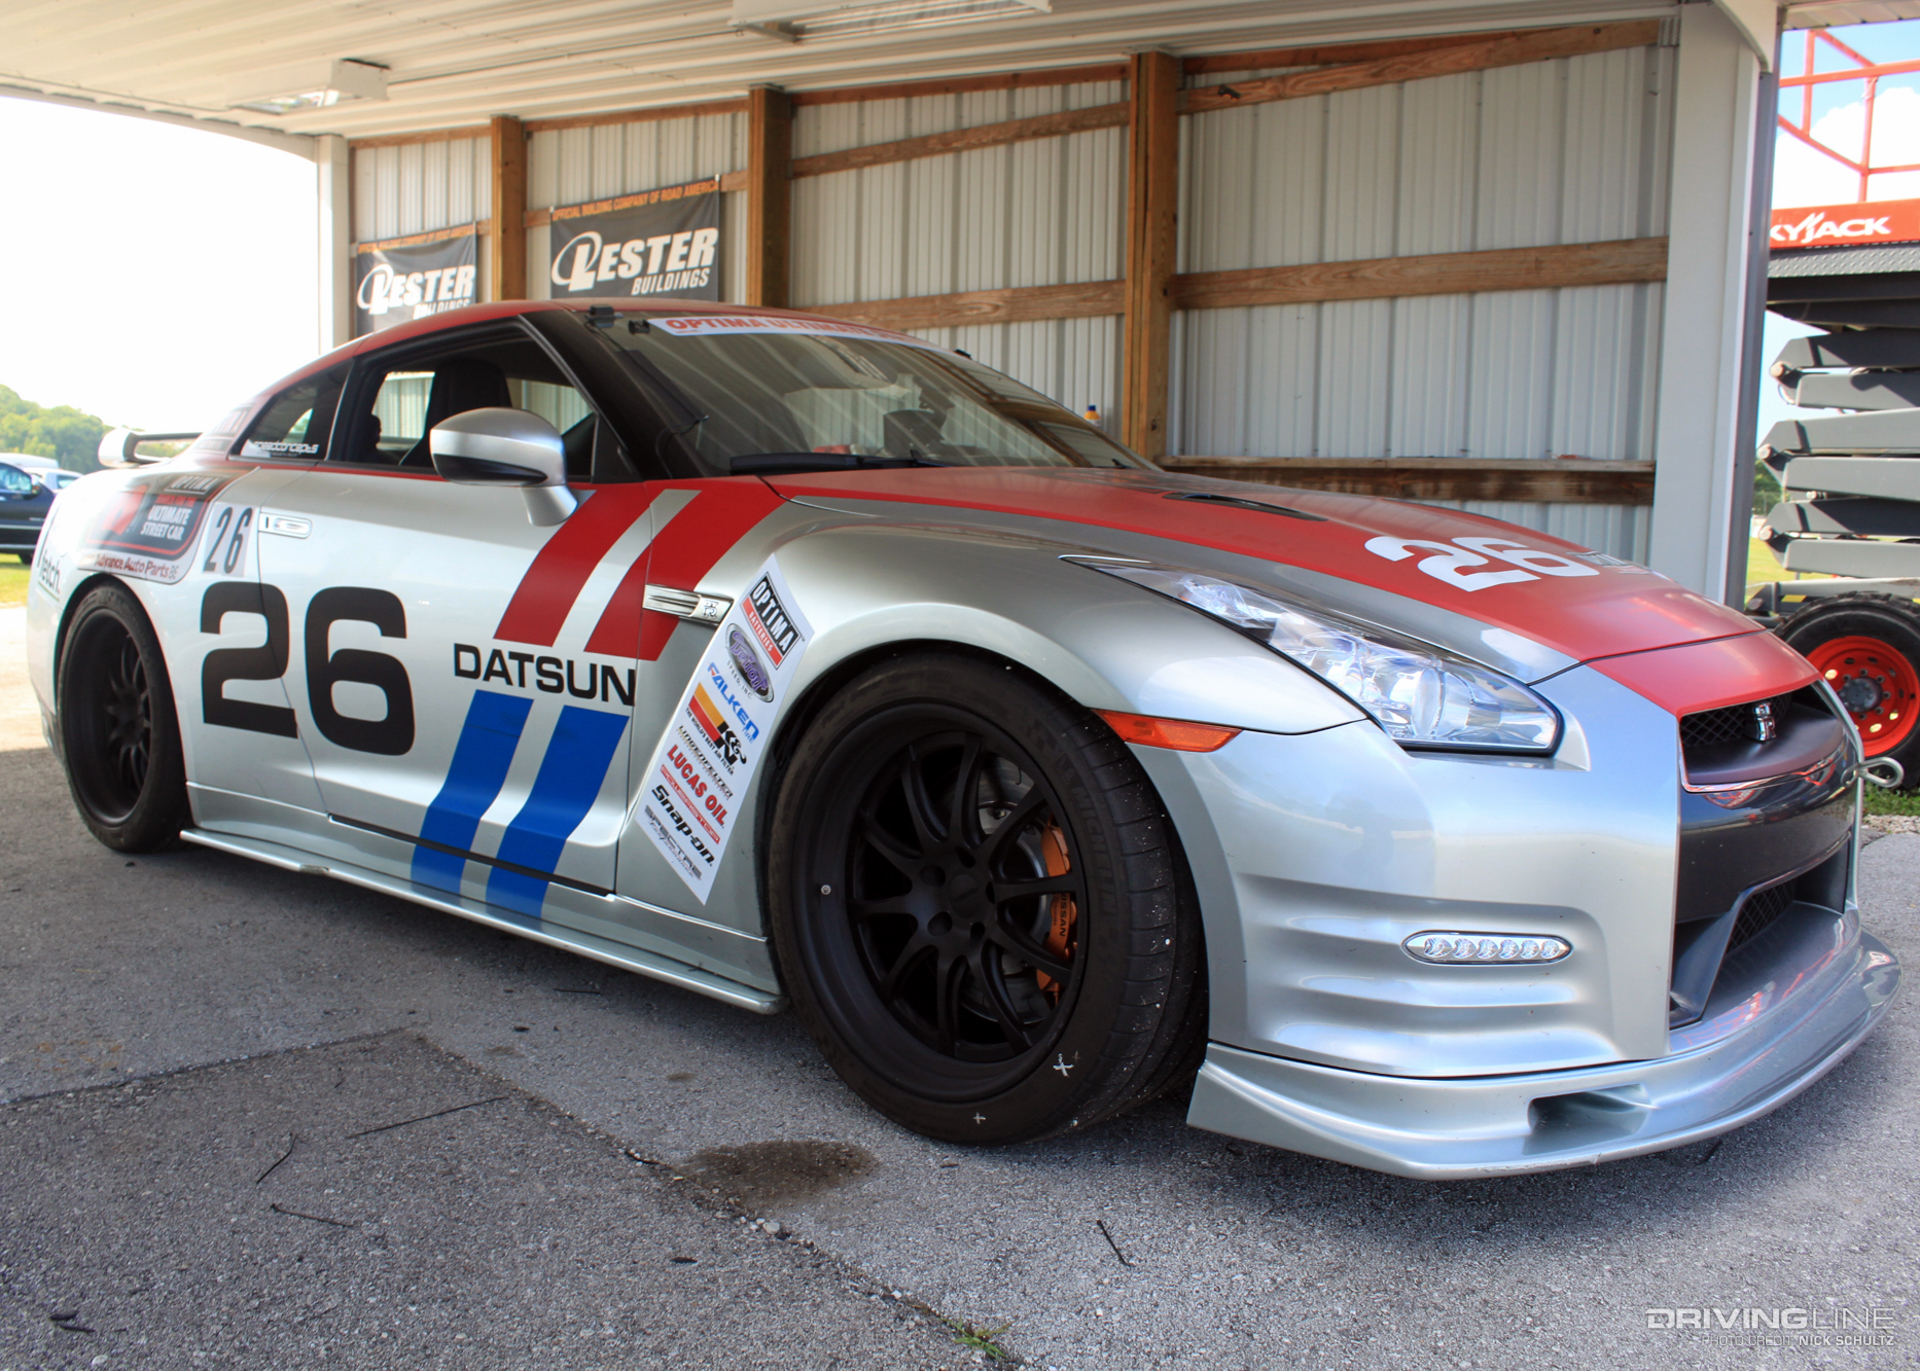 Weekend Racer: Tracking My Nissan 370Z Sport at Ultimate Street Car ...